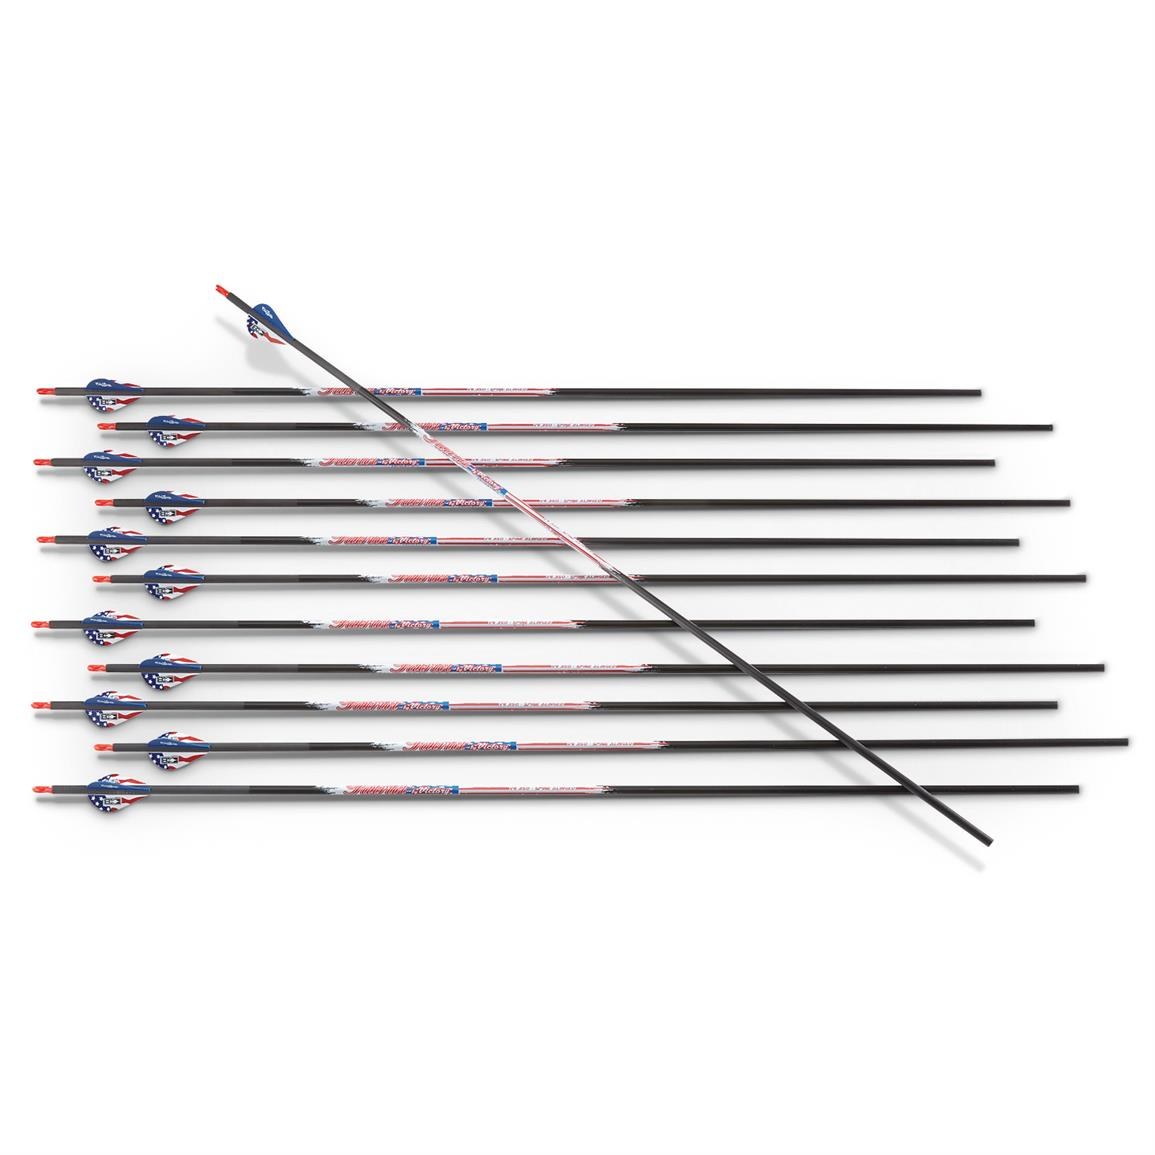 Victory Patriot Carbon Arrows, 12 Pack